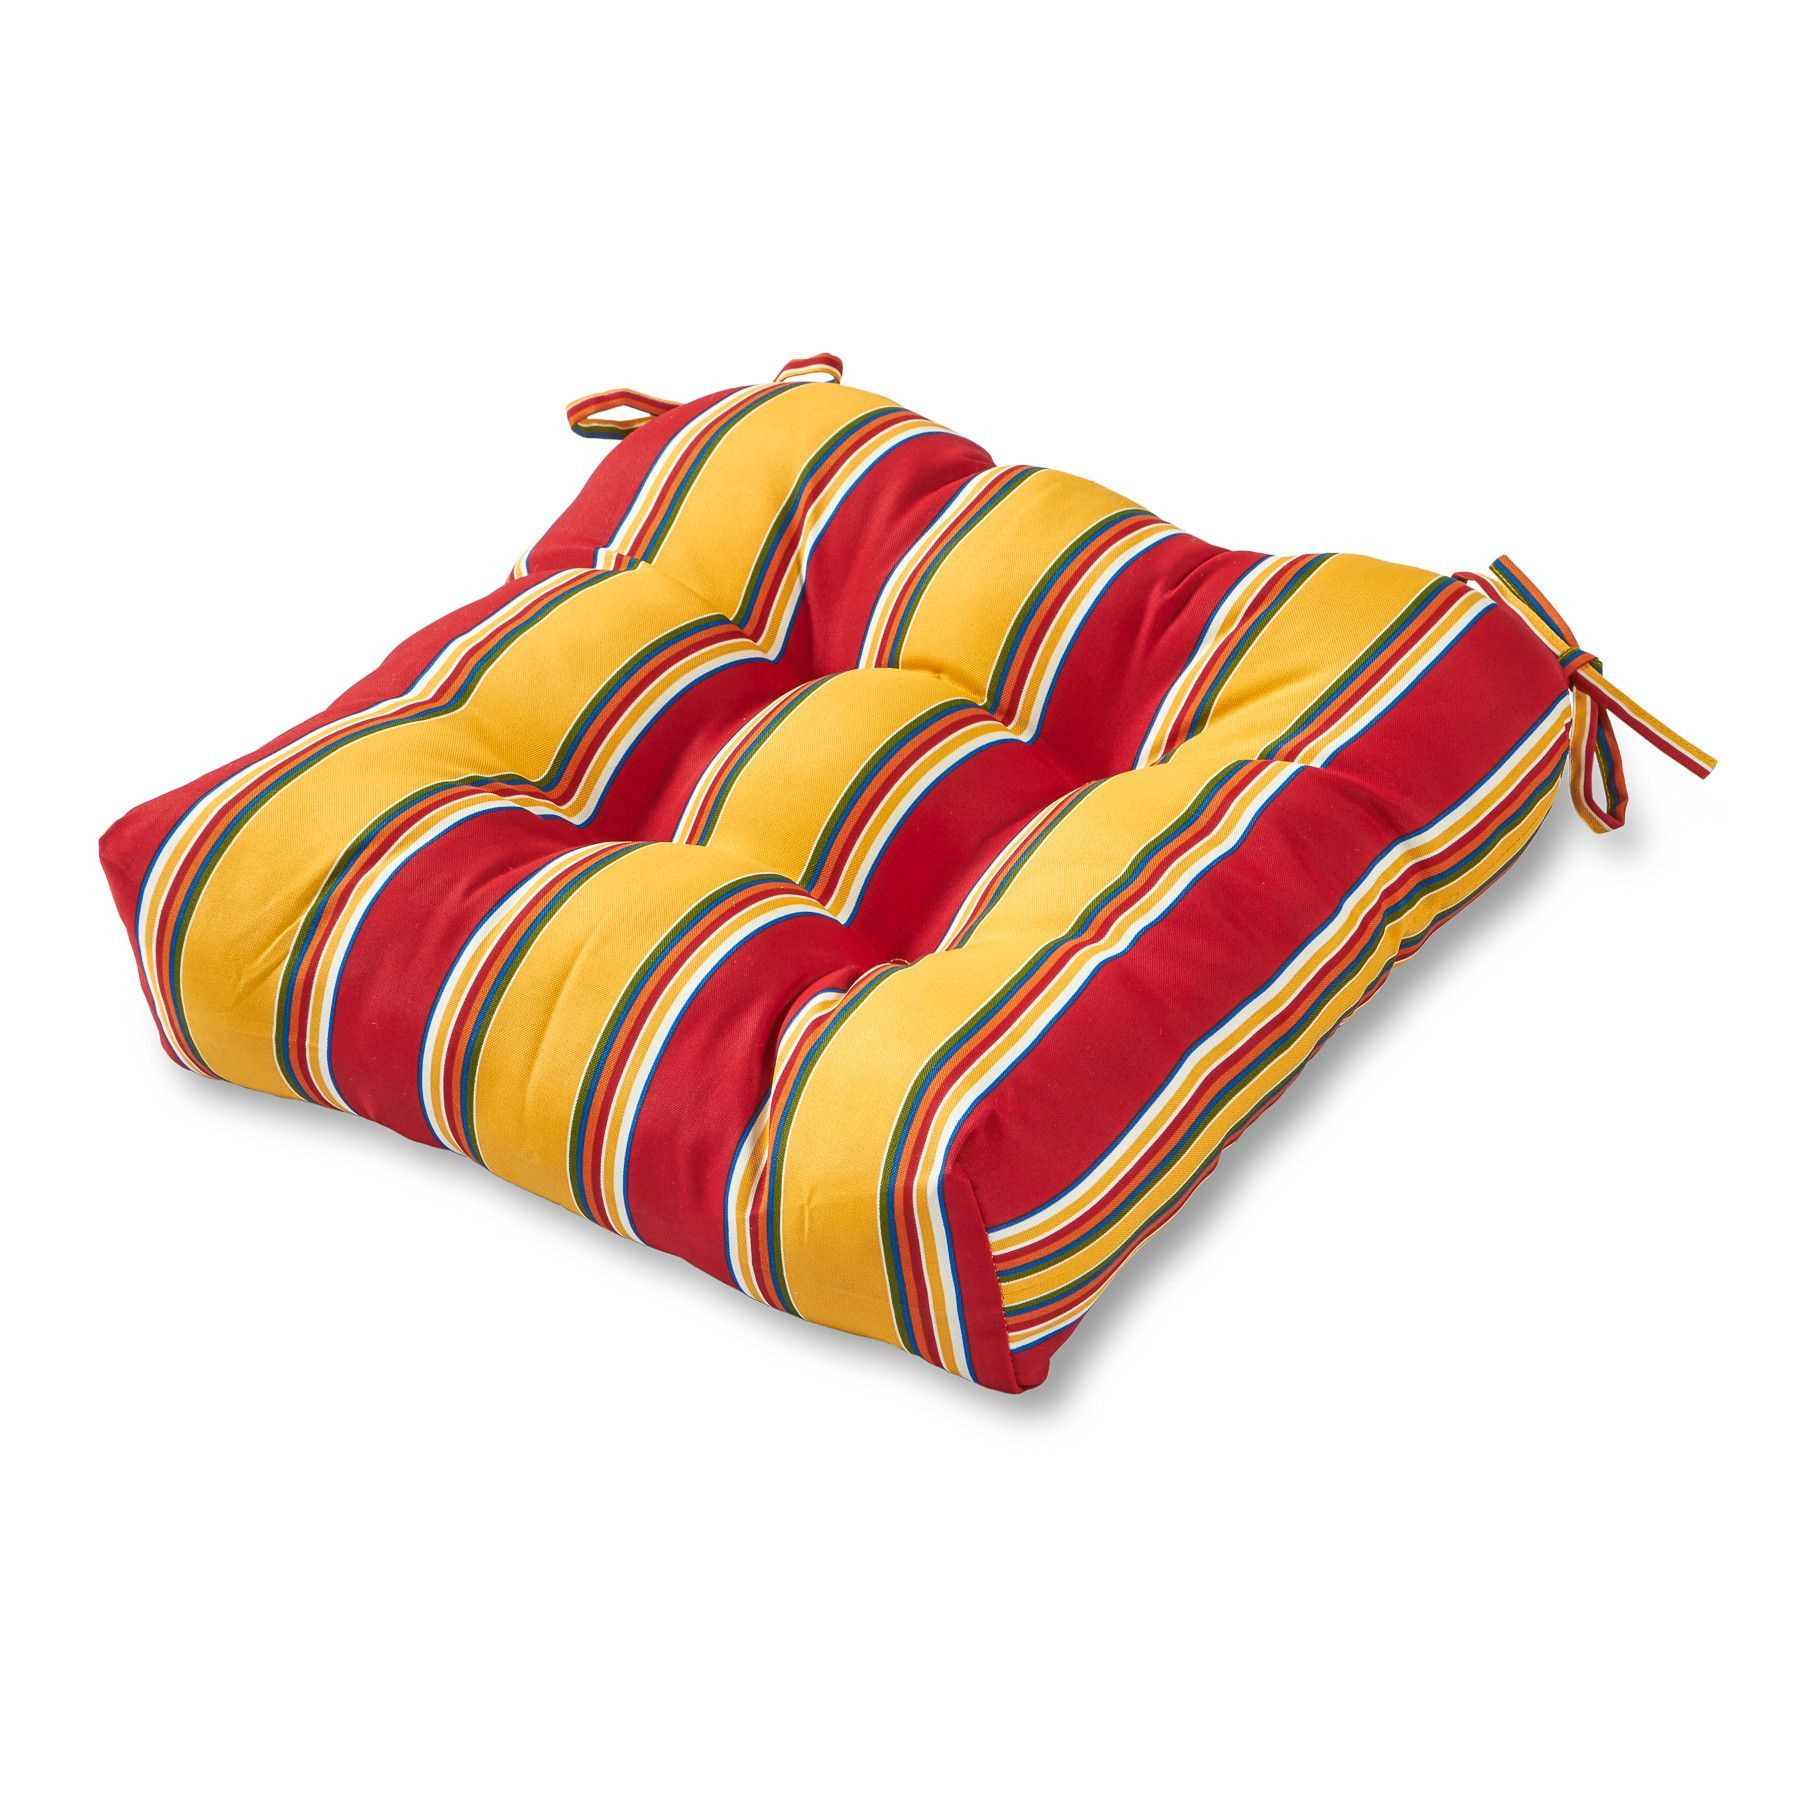 Outdoor Dining Chair Cushion Outdoor Seat Cushions Outdoor Chair Cushions Chair Cushions